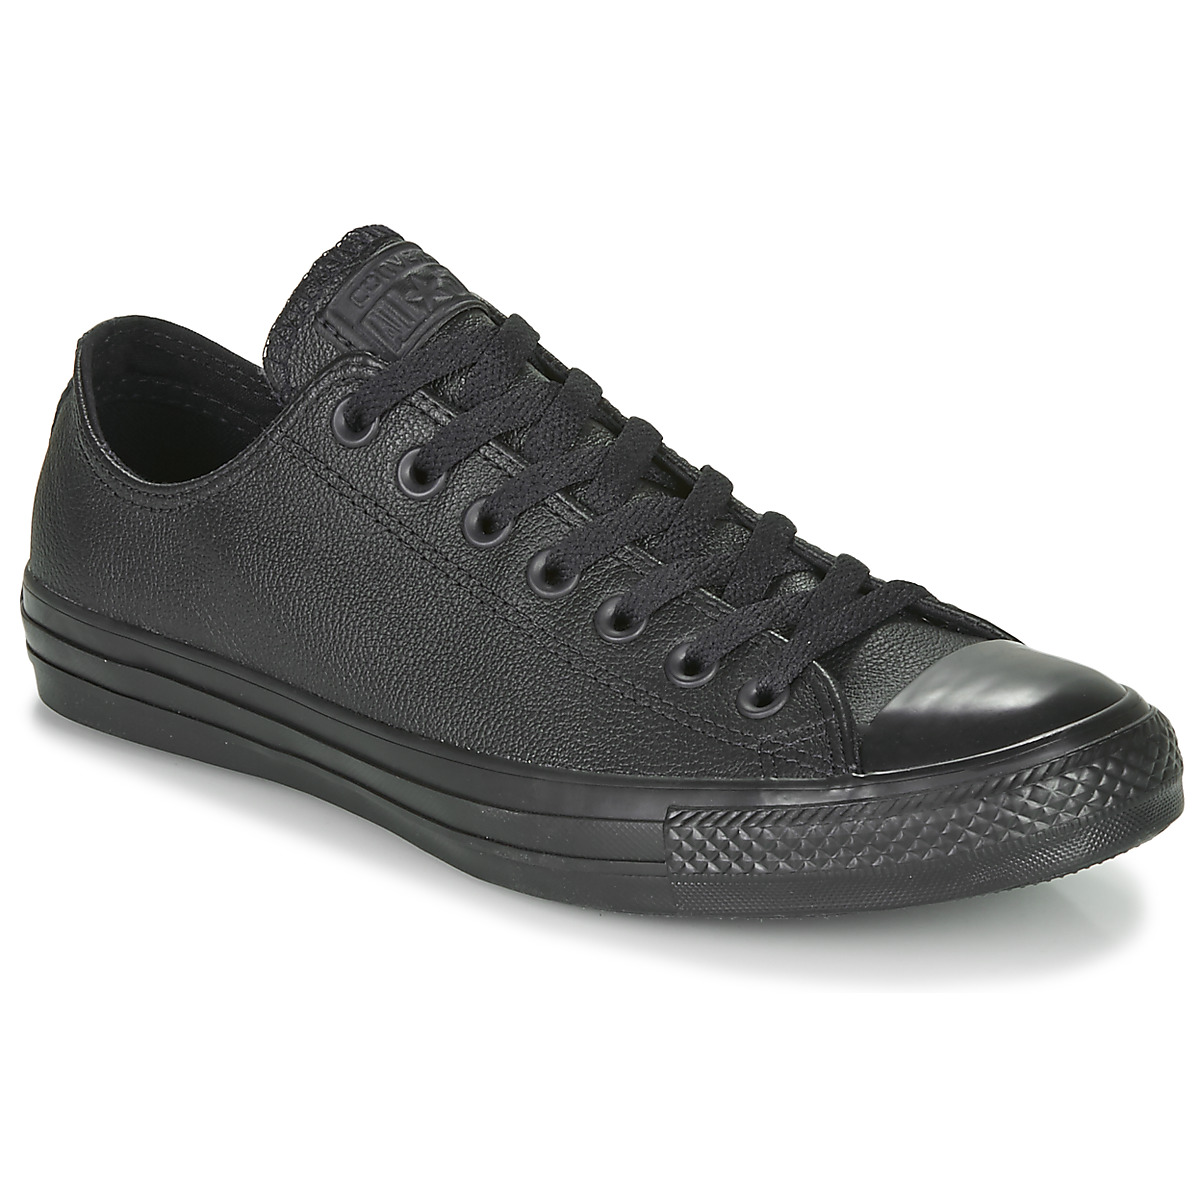 converse all star leather ox black free delivery with spartoo uk shoes low top trainers. Black Bedroom Furniture Sets. Home Design Ideas